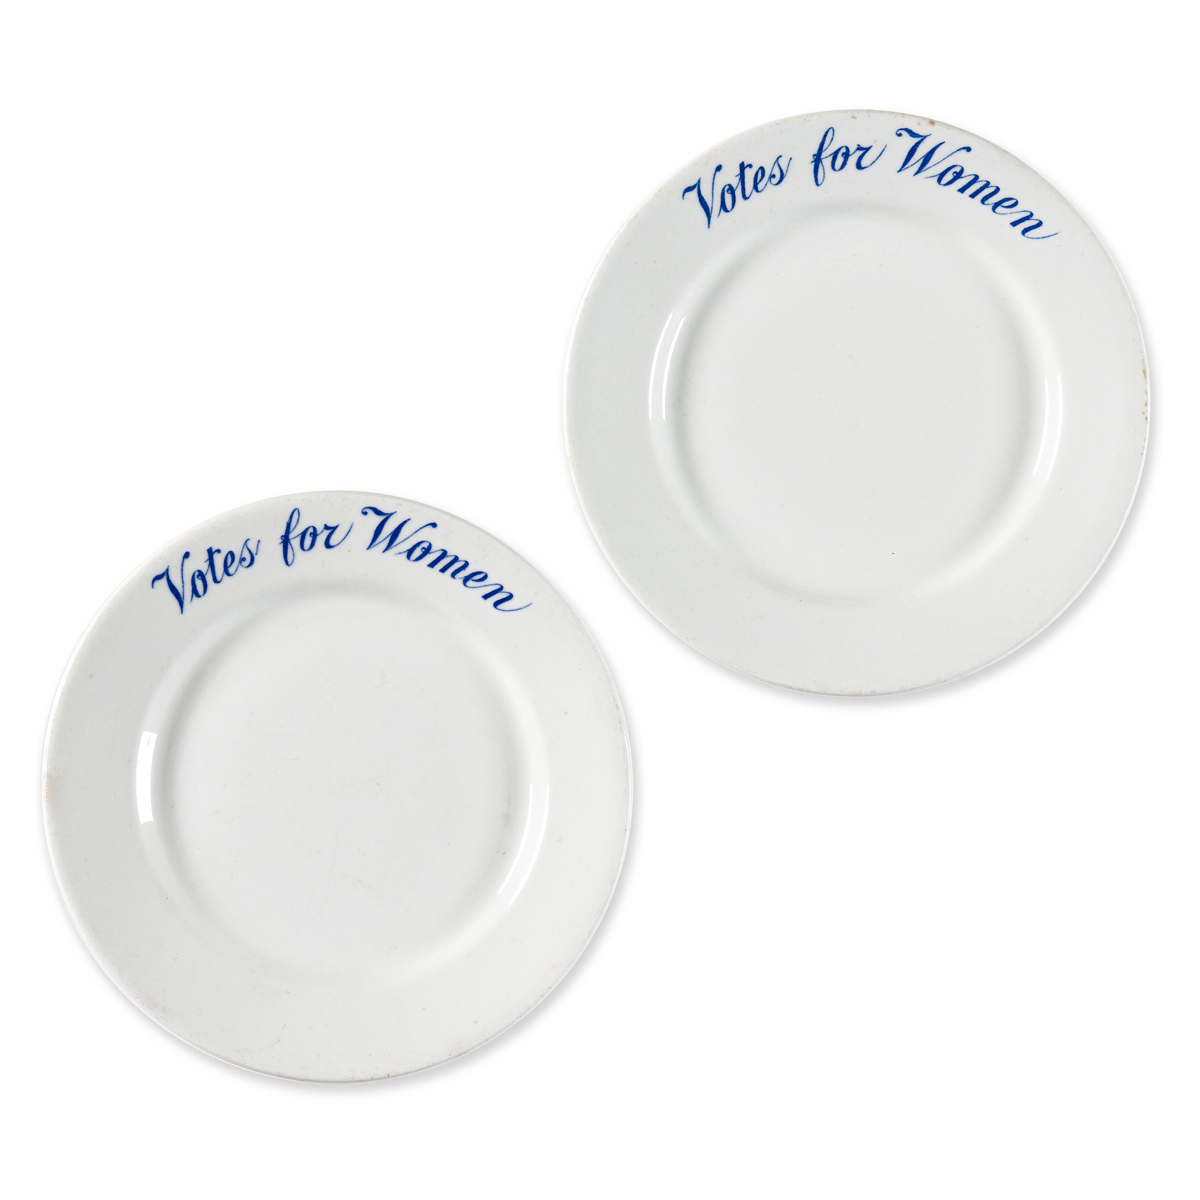 Votes for Women. Two China Bread-and-Butter Plates.